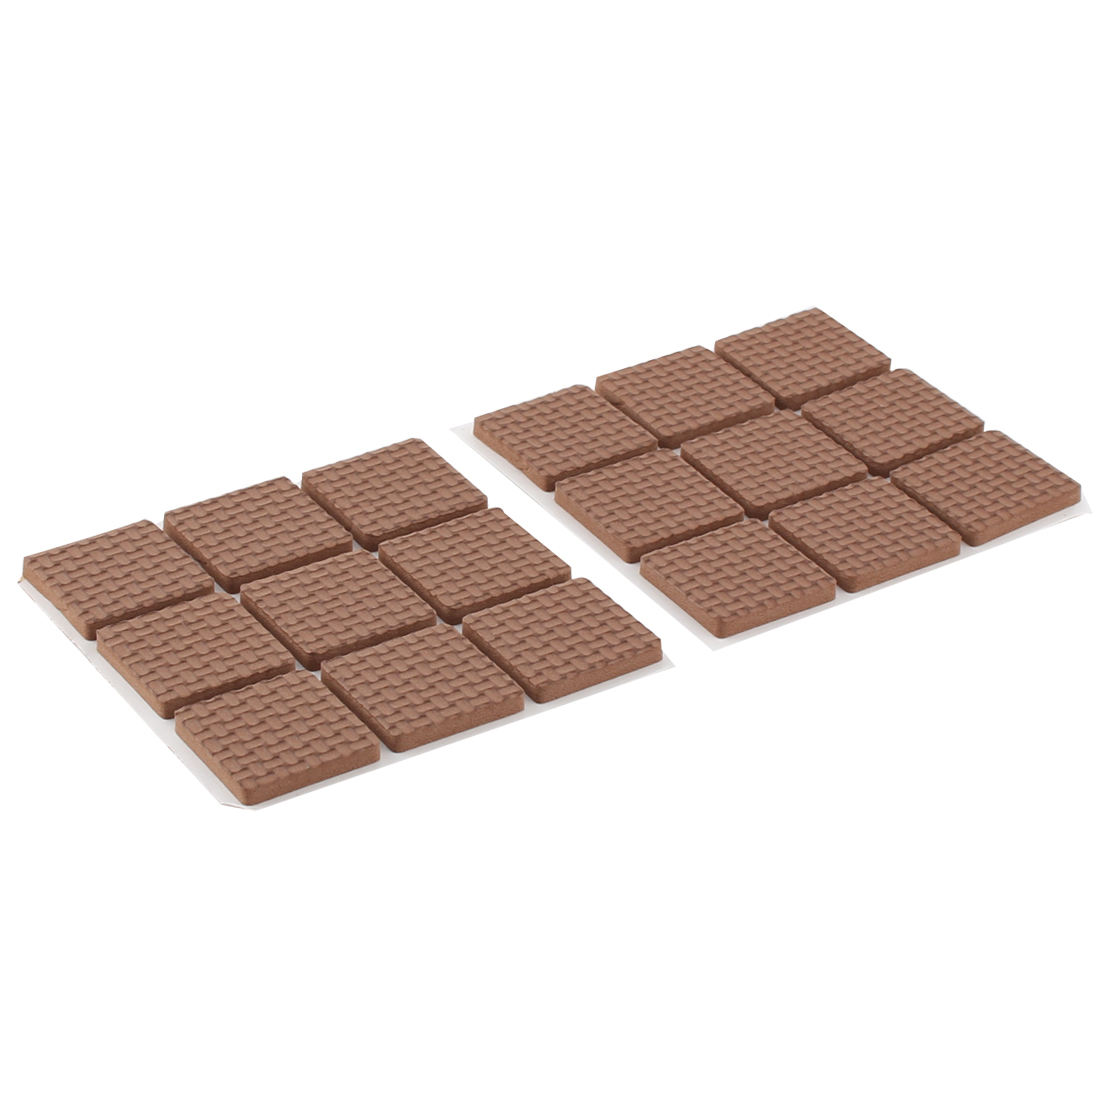 Table Chair EVA Square Anti Skid Furniture Feet Pads Cover Cushion Brown 25 x 25mm 18pcs